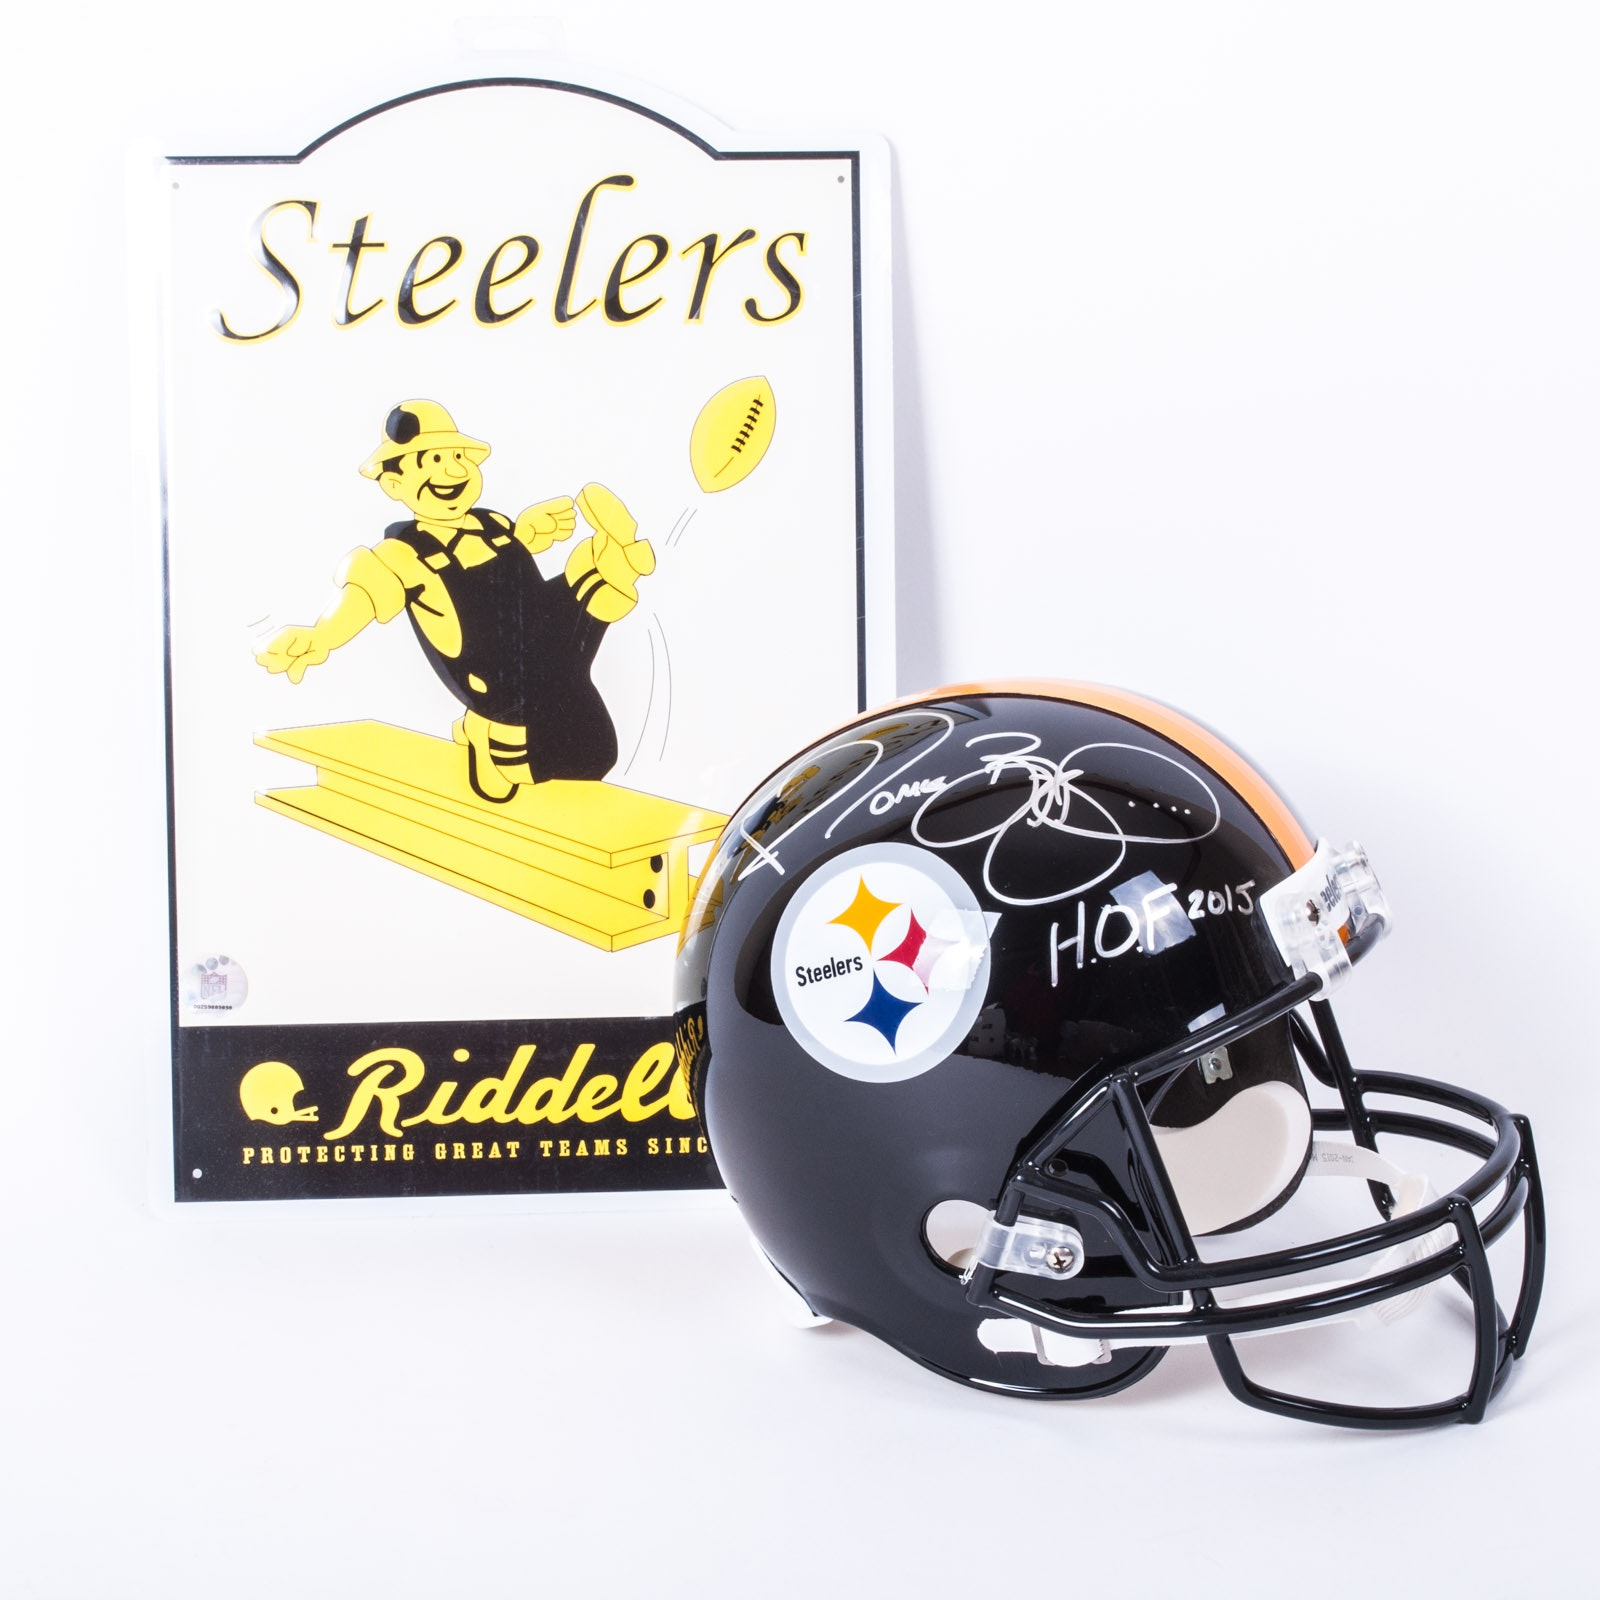 Jerome Bettis Autographed Helmet with Photo and Novelty Sign